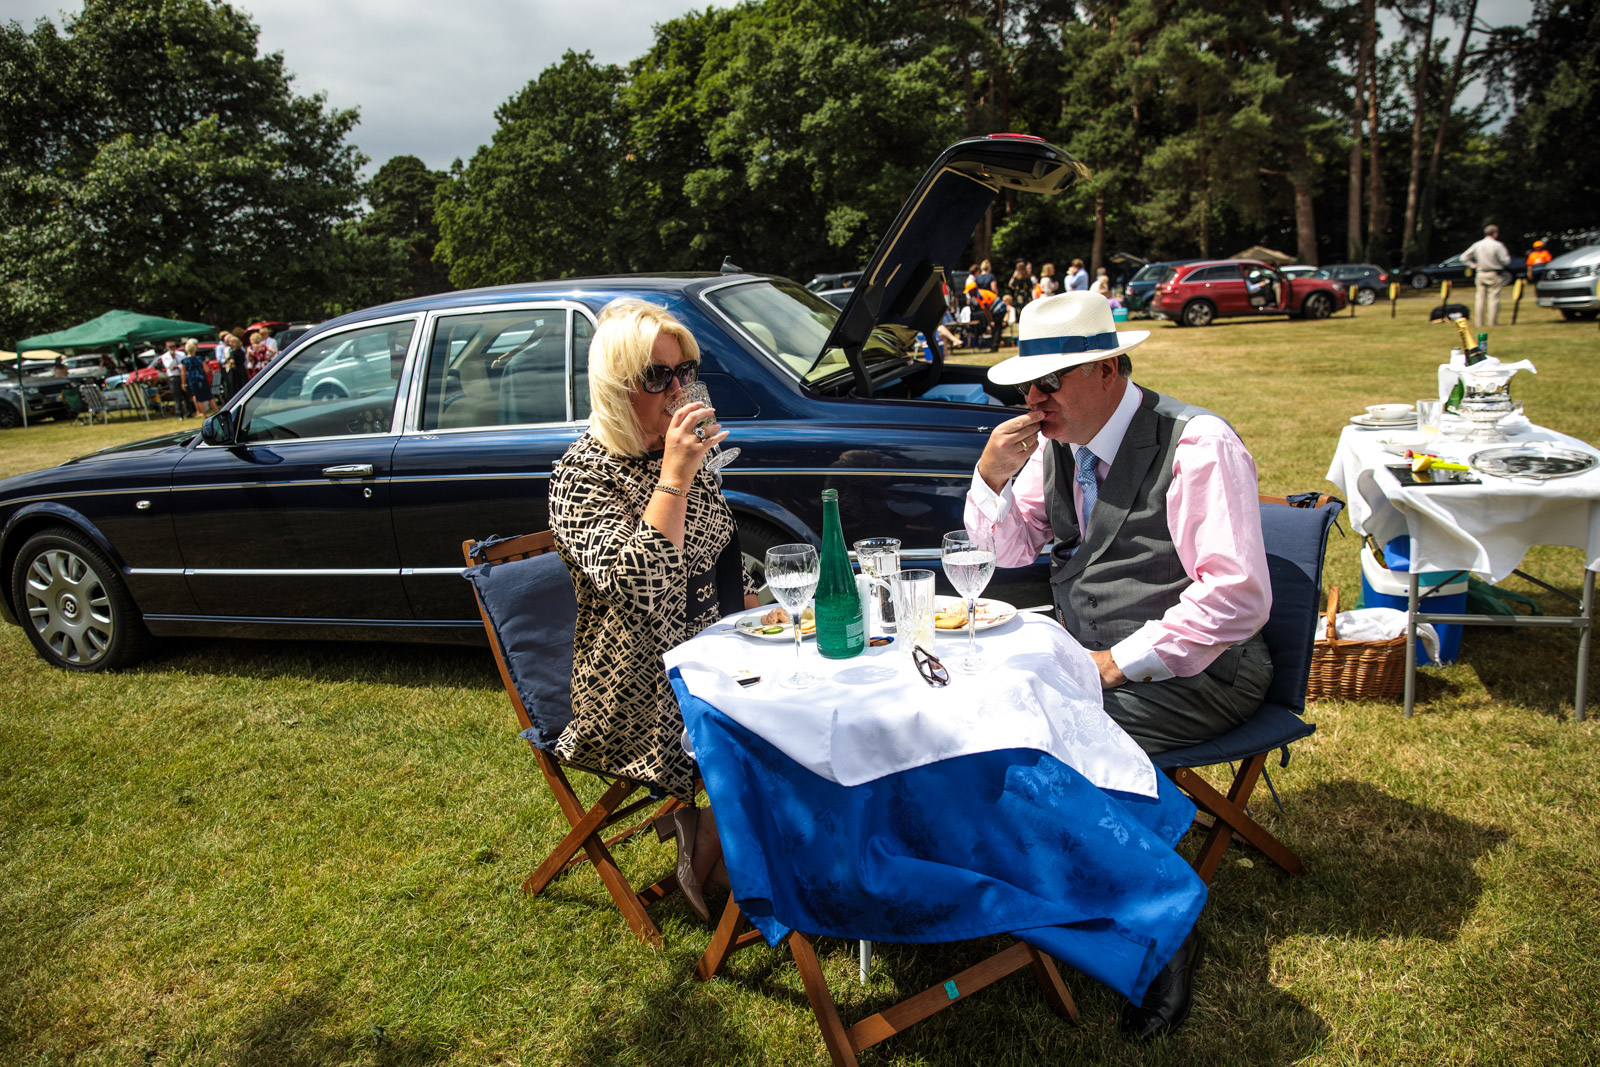 Racegoers eat and drink by their Bentley in a car park on day 3 of Royal Ascot on June 22, 2017 in Ascot.